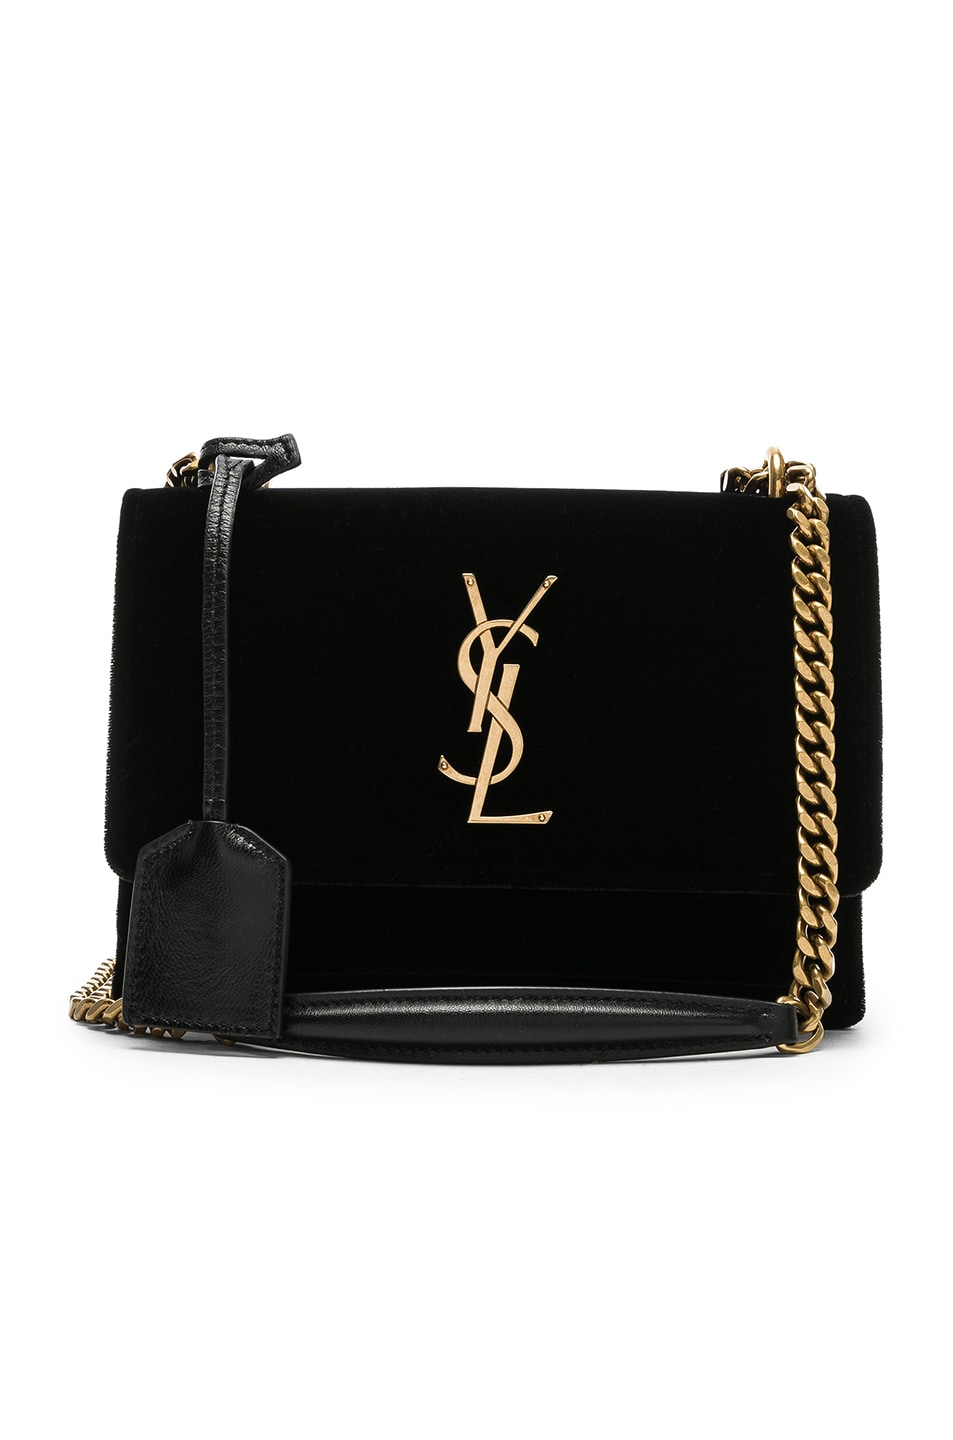 c21db7c36 Image 1 of Saint Laurent Small Velvet & Leather Sunset Chain Bag in Black